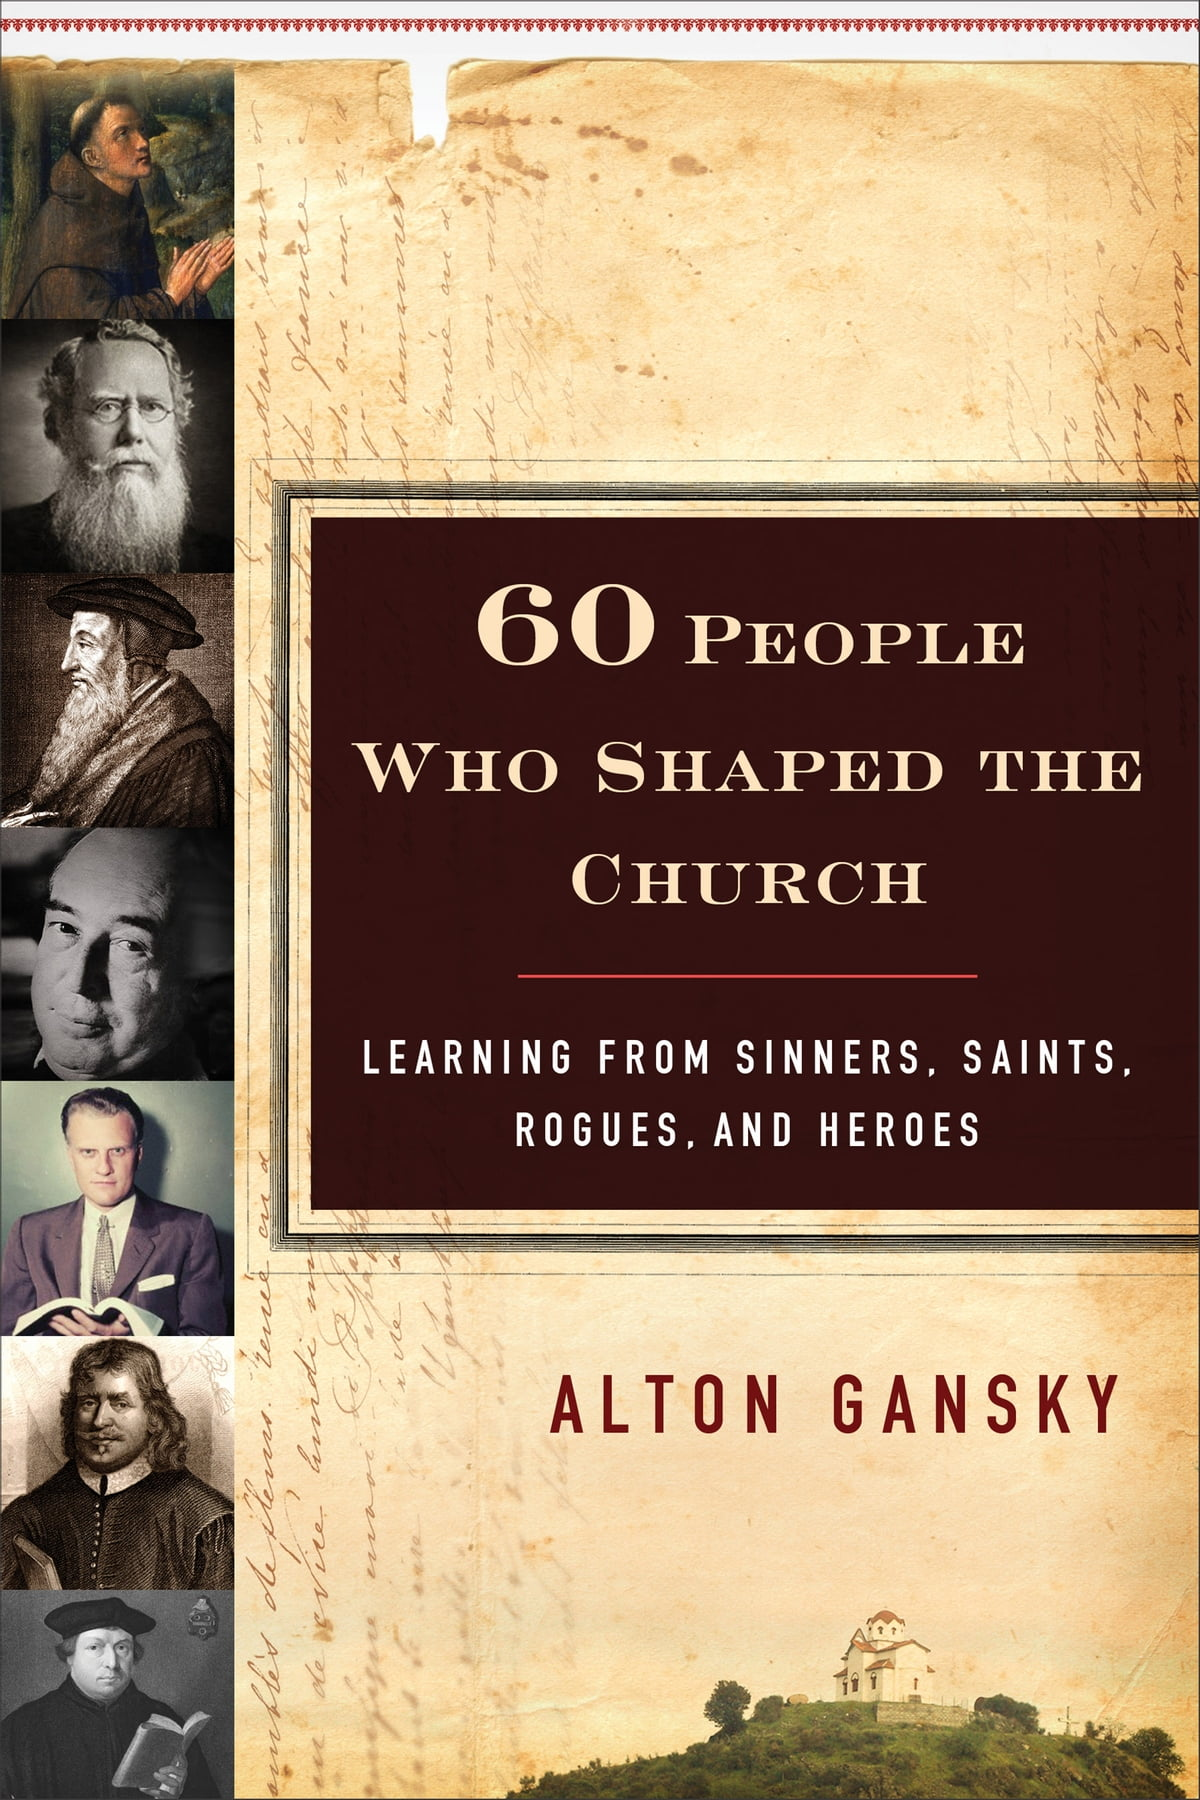 60 People Who Shaped The Church  Learning From Sinners, Saints, Rogues, And